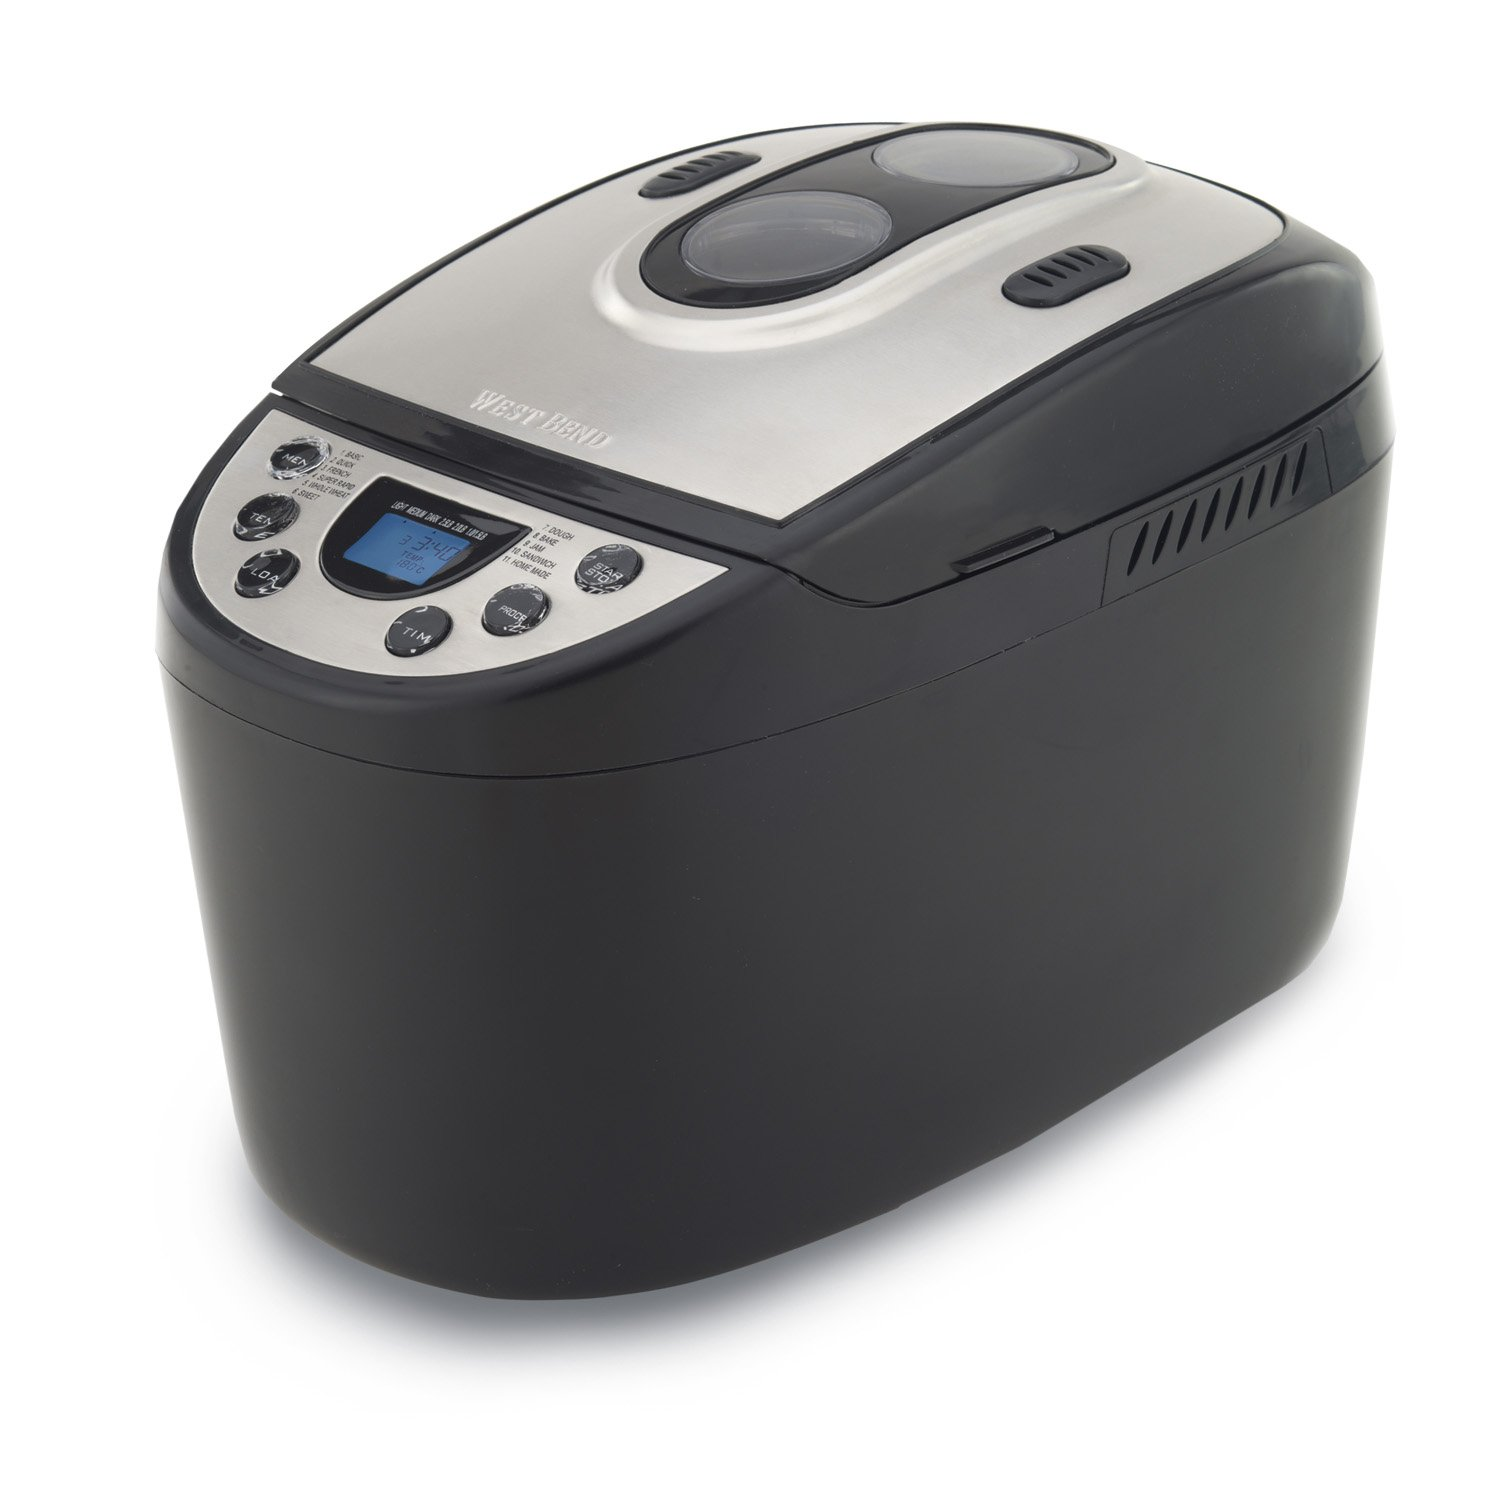 West Bend 41300 Hi-Rise Electronic Dual-Blade Breadmaker, Black (Discontinued by Manufacturer)